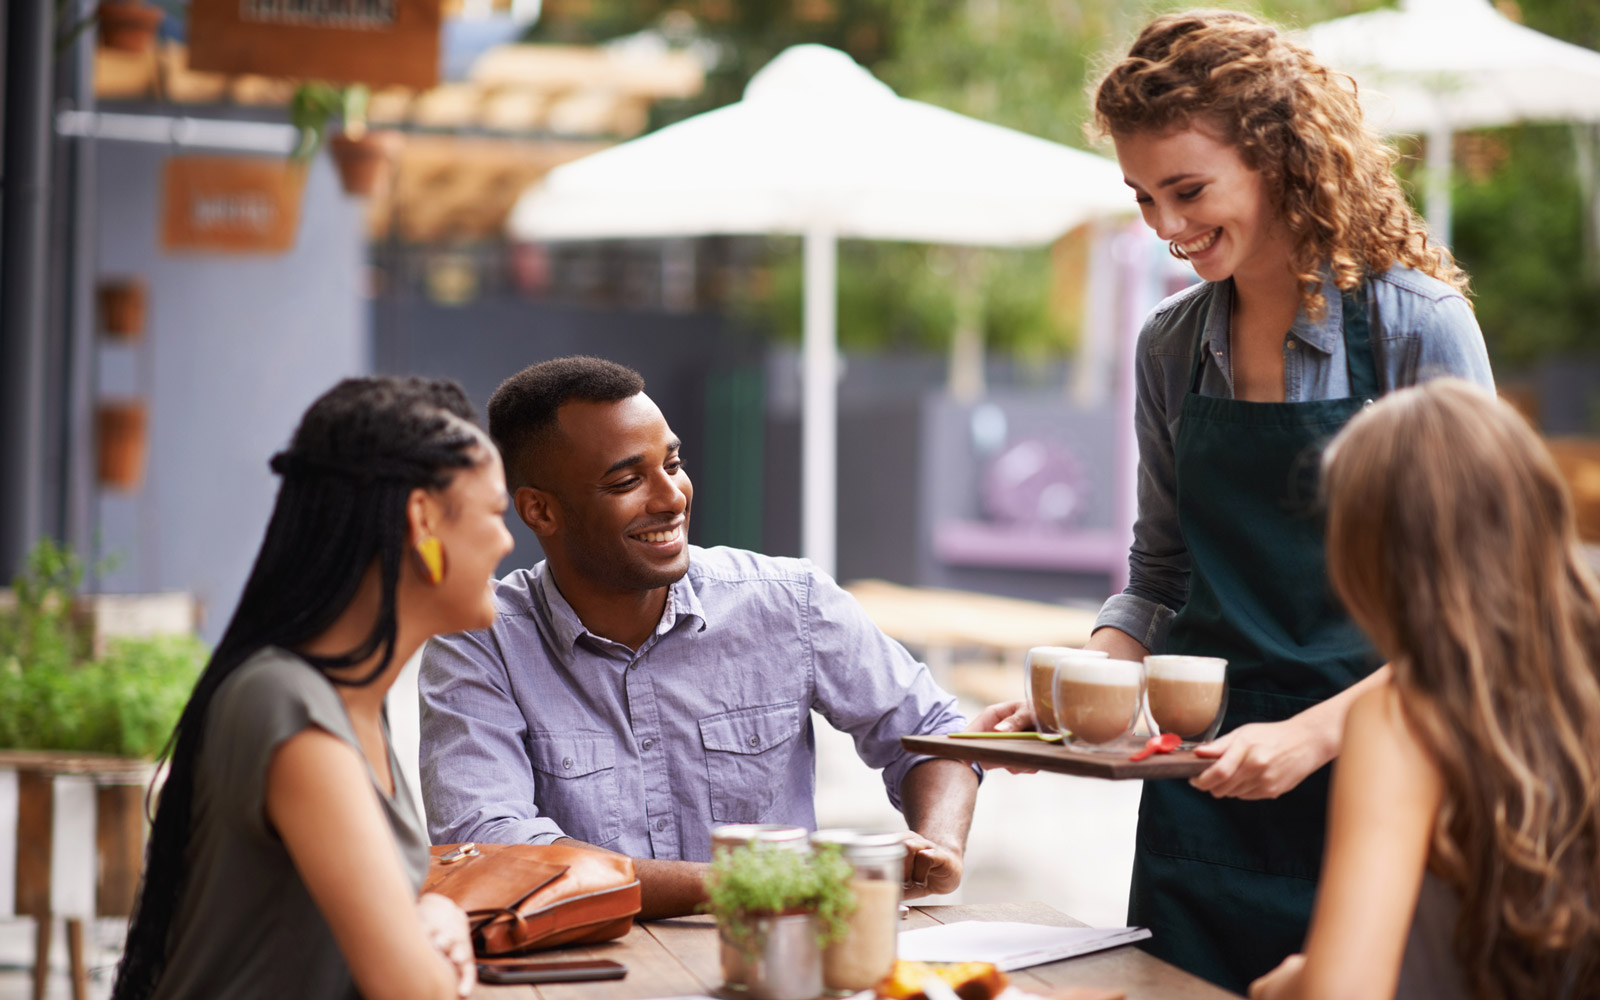 5 'Nice' Things You Do That Actually Annoy Restaurant Staff